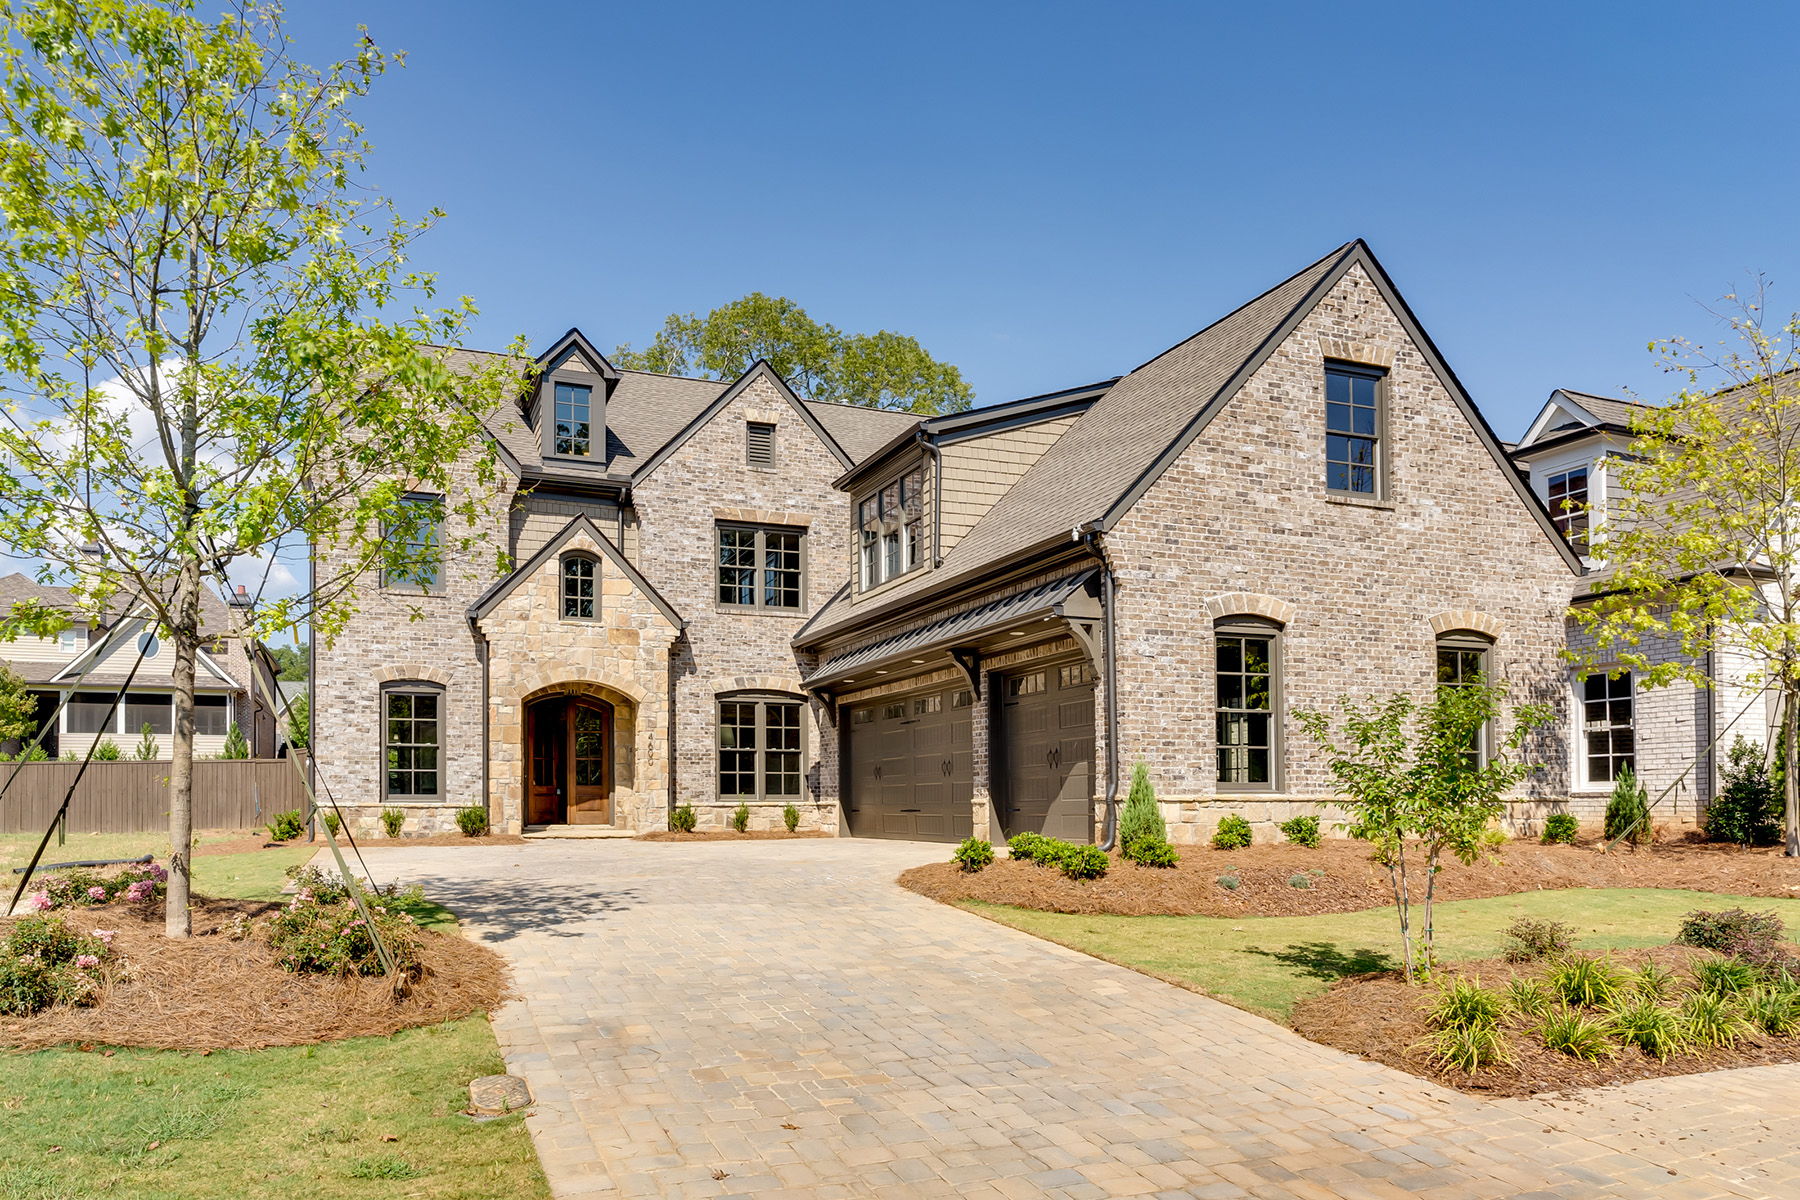 Single Family Homes のために 売買 アット Luxury New Construction In The Heart Of East Cobb 4600 Oakside Point, Marietta, ジョージア 30067 アメリカ